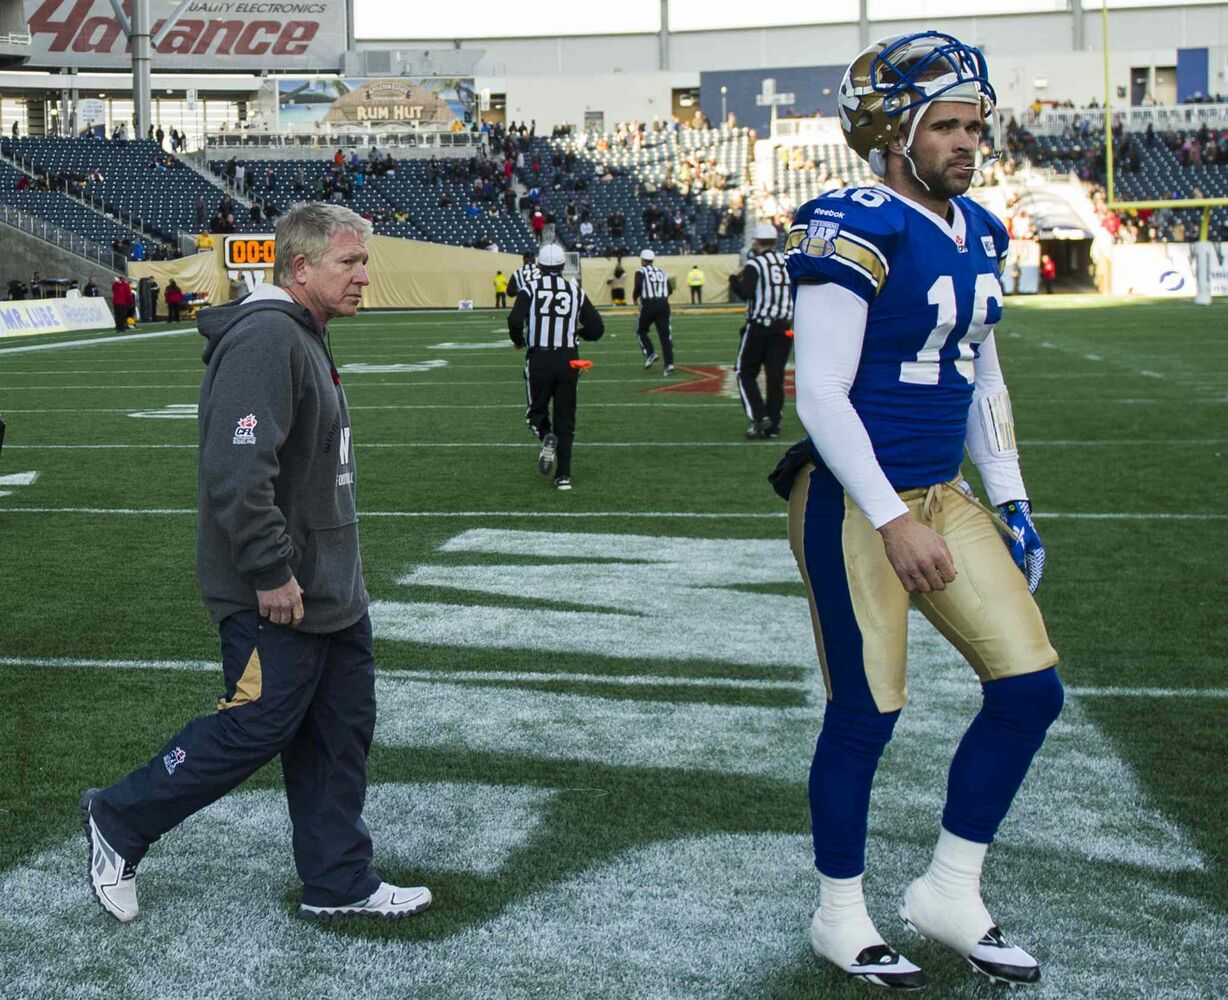 Winnipeg Blue Bombers head coach Tim Burke and quarterback Jason Boltus walk off of the field after the game.